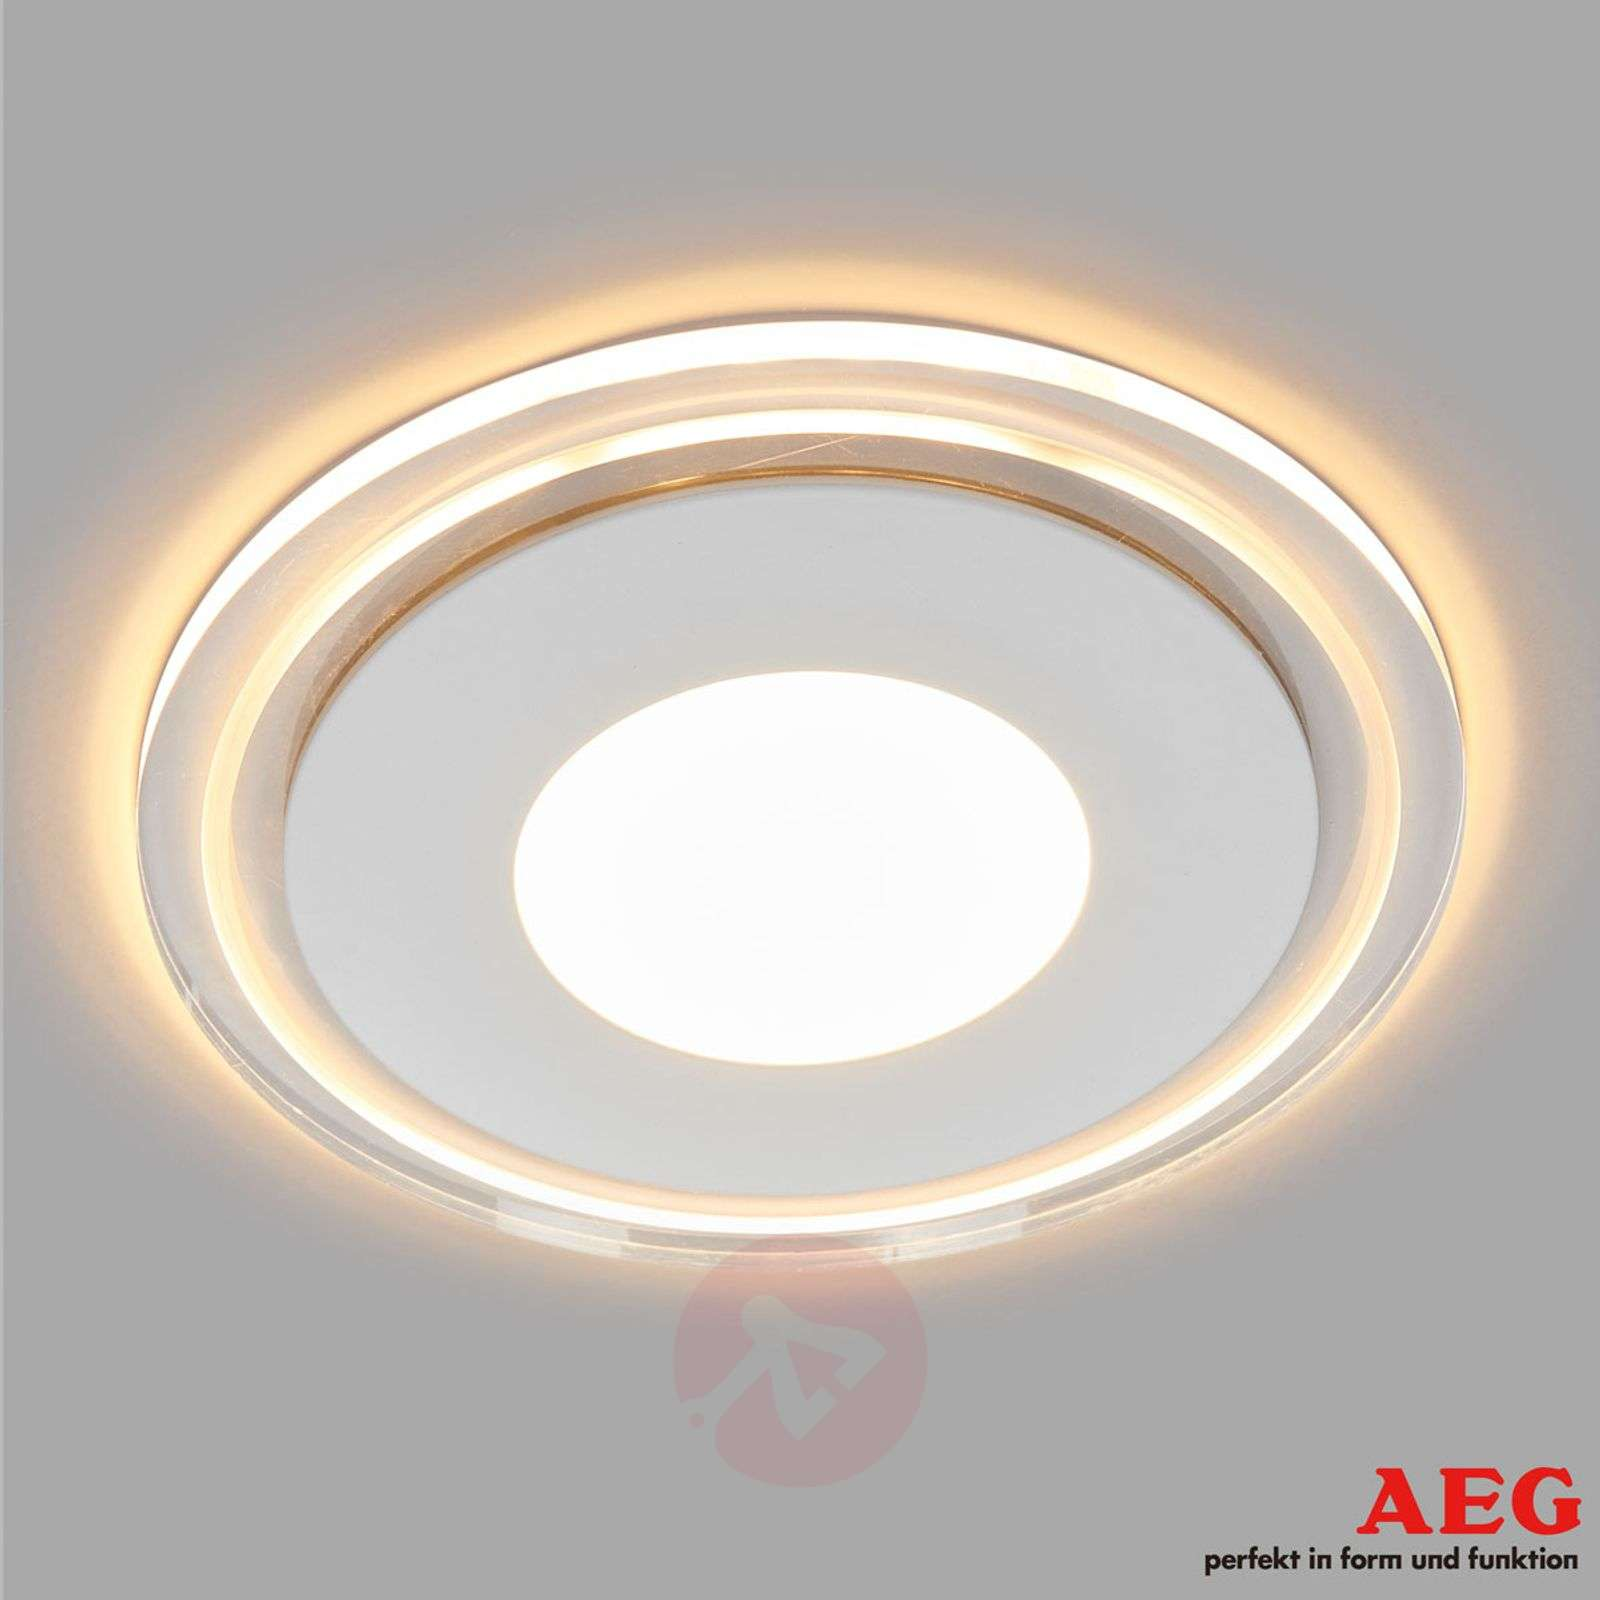 idea galery can cans new low with installation ceiling lighting led awesome profile light democraciaejustica home lights of